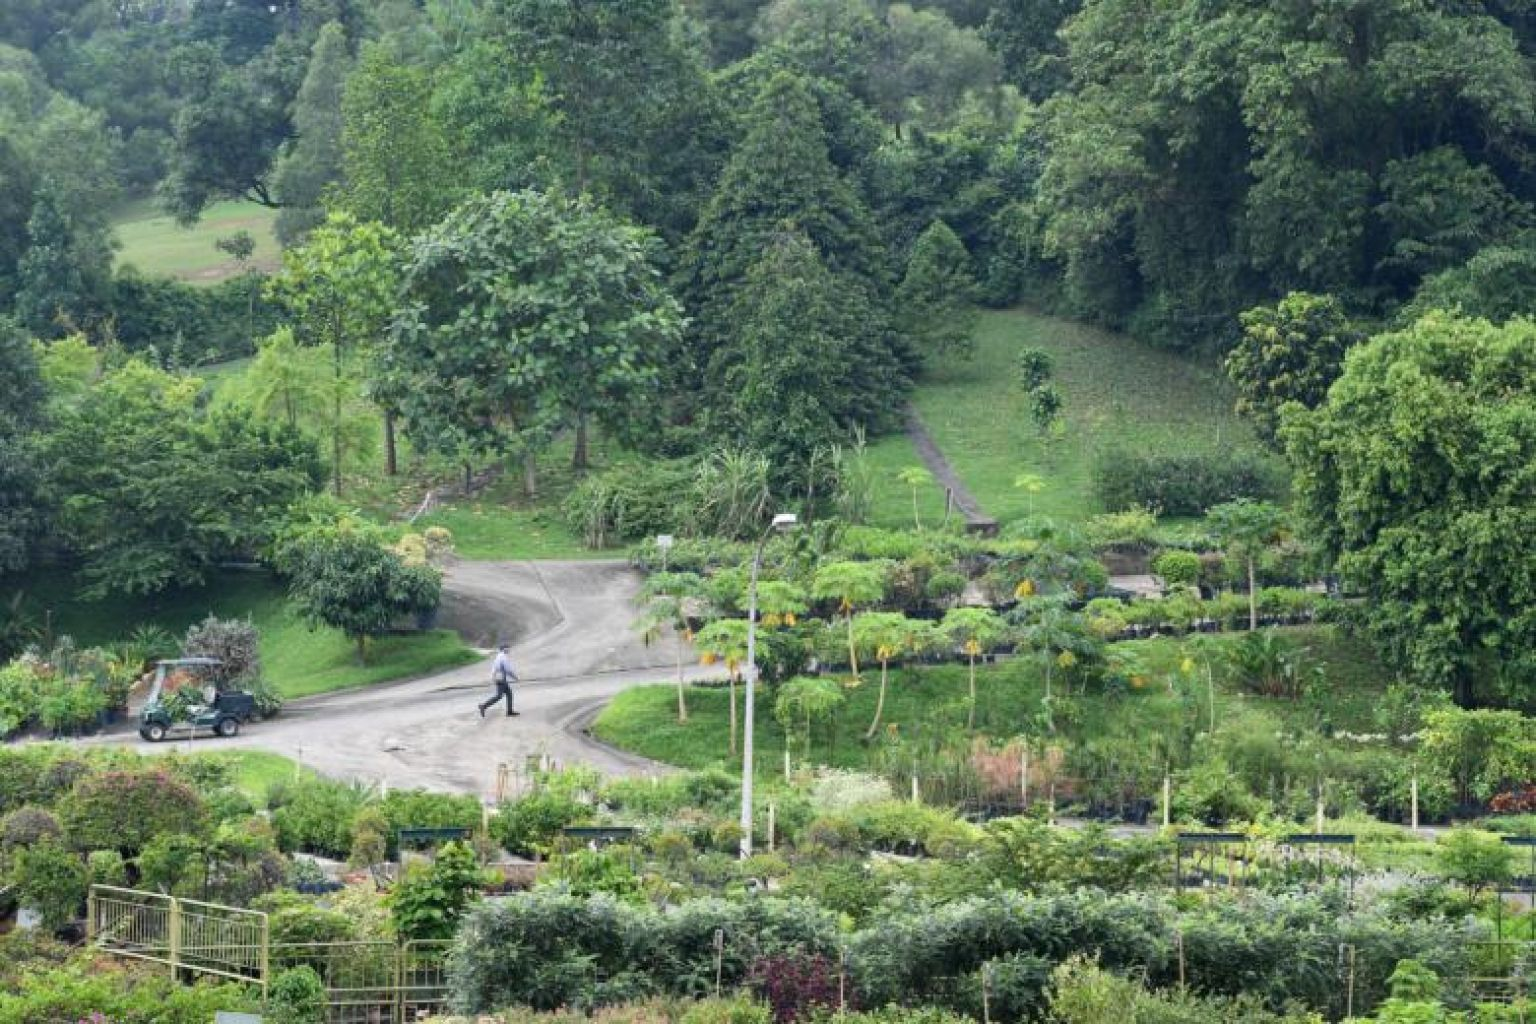 Increased expertise, more holistic overview of flora and fauna for NParks